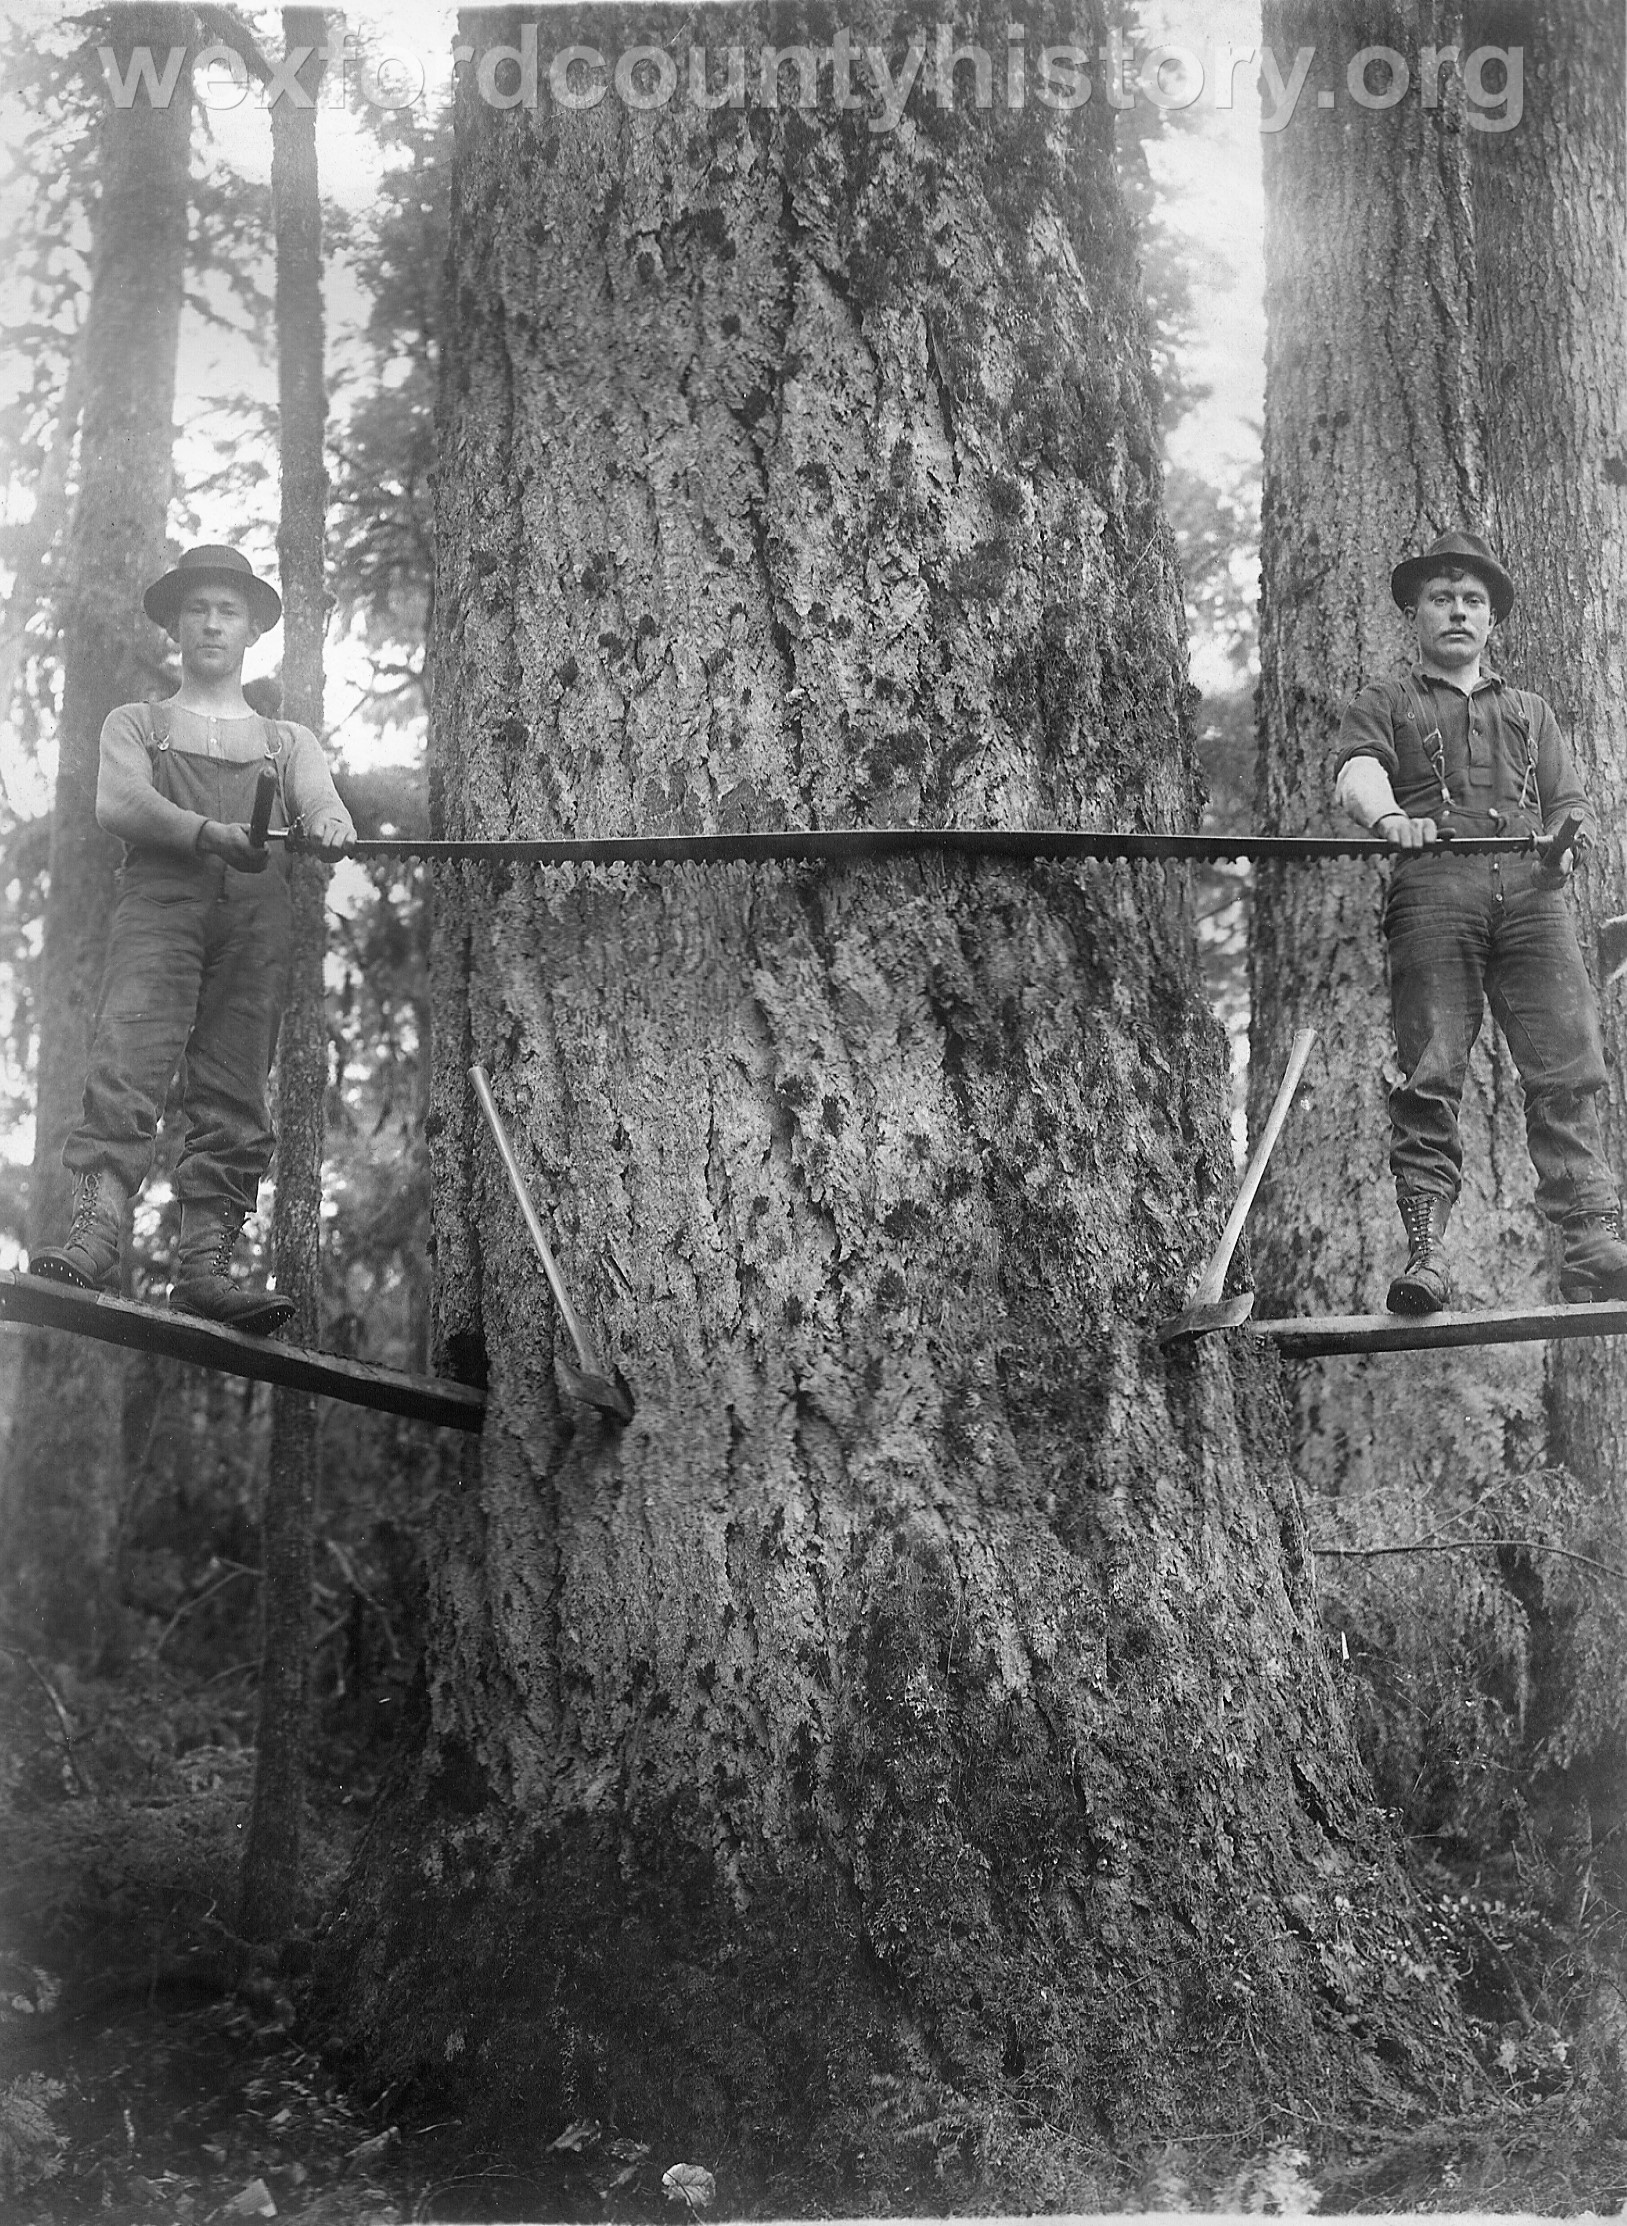 Wexford-County-Lumber-Timber-Harvest-Circa-1890s-7